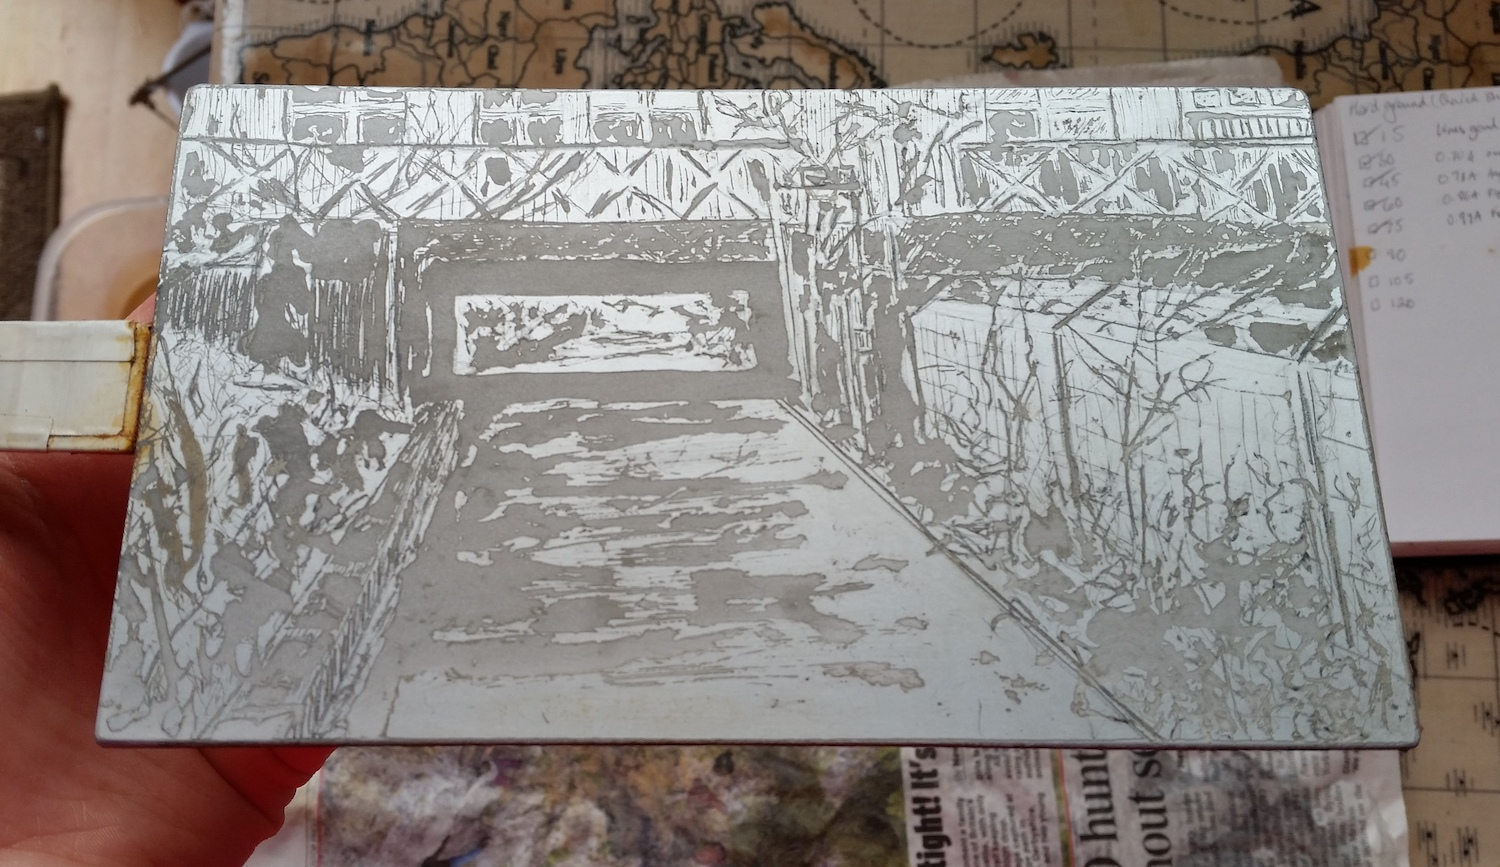 Etched lines (Underpass).jpg